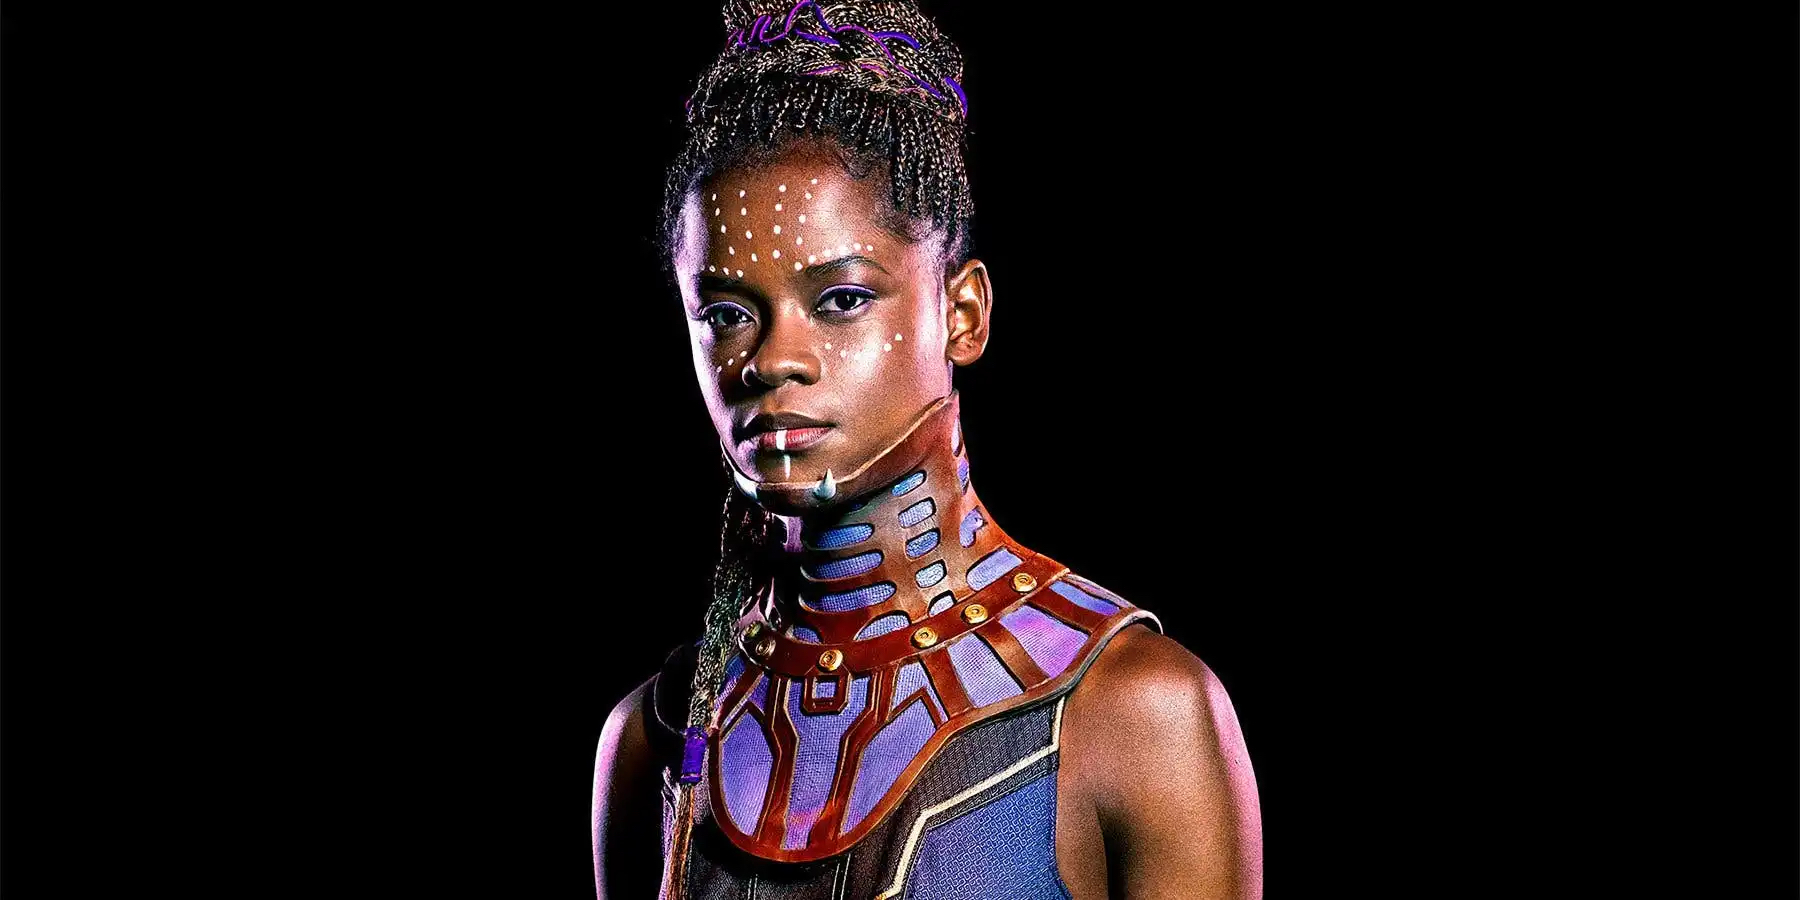 Shuri - Letitia Wright - Black Panther | DR